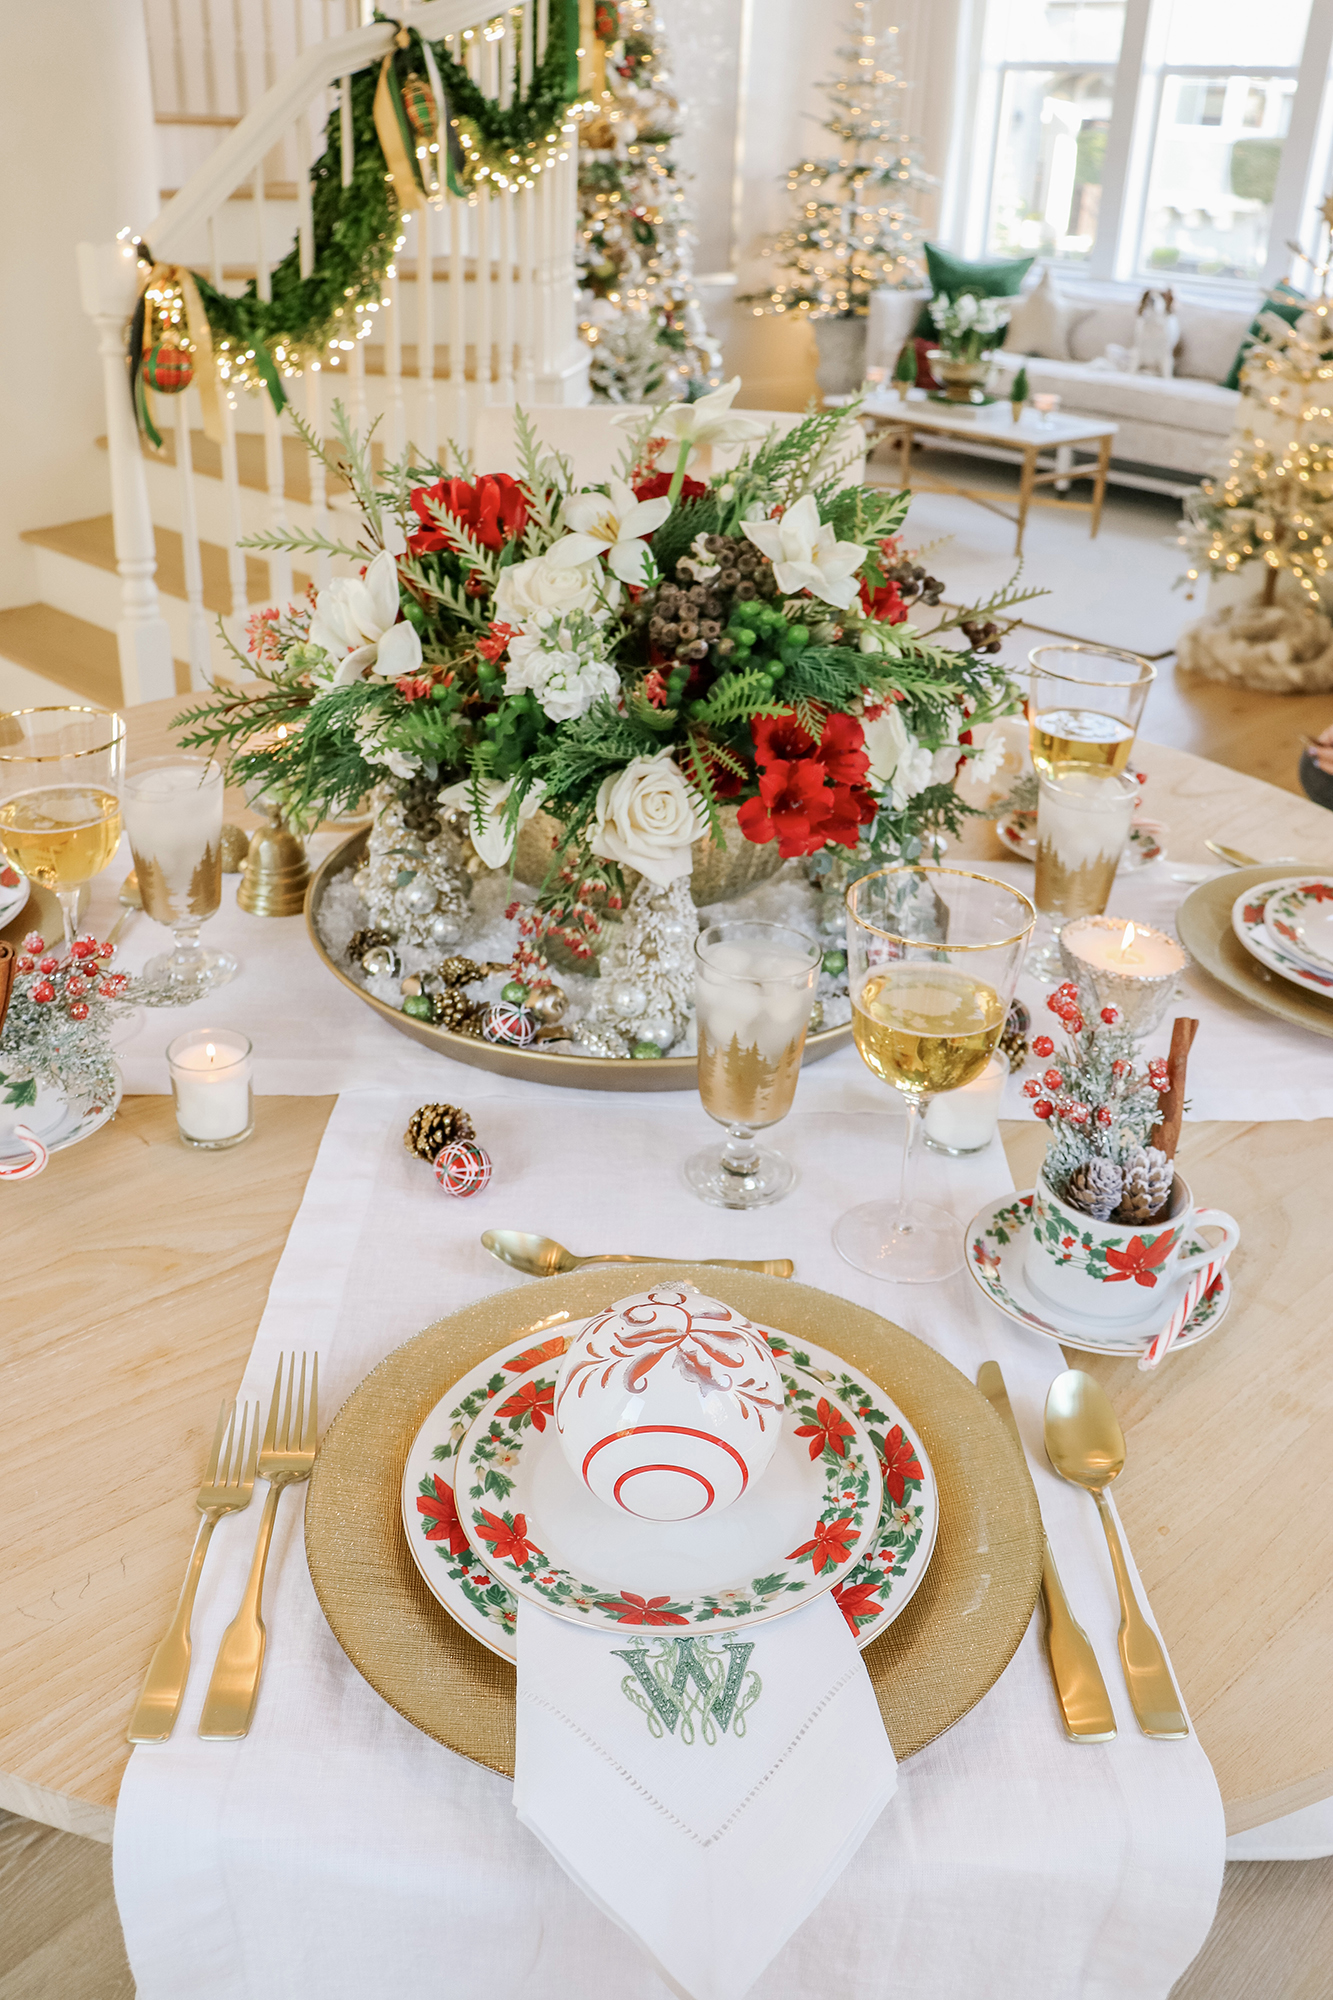 My 2020 Winter Tablescape with Vintage-Style Decor - Lovely decor pieces and affordable options at all price points, vintage christmas decor ideas